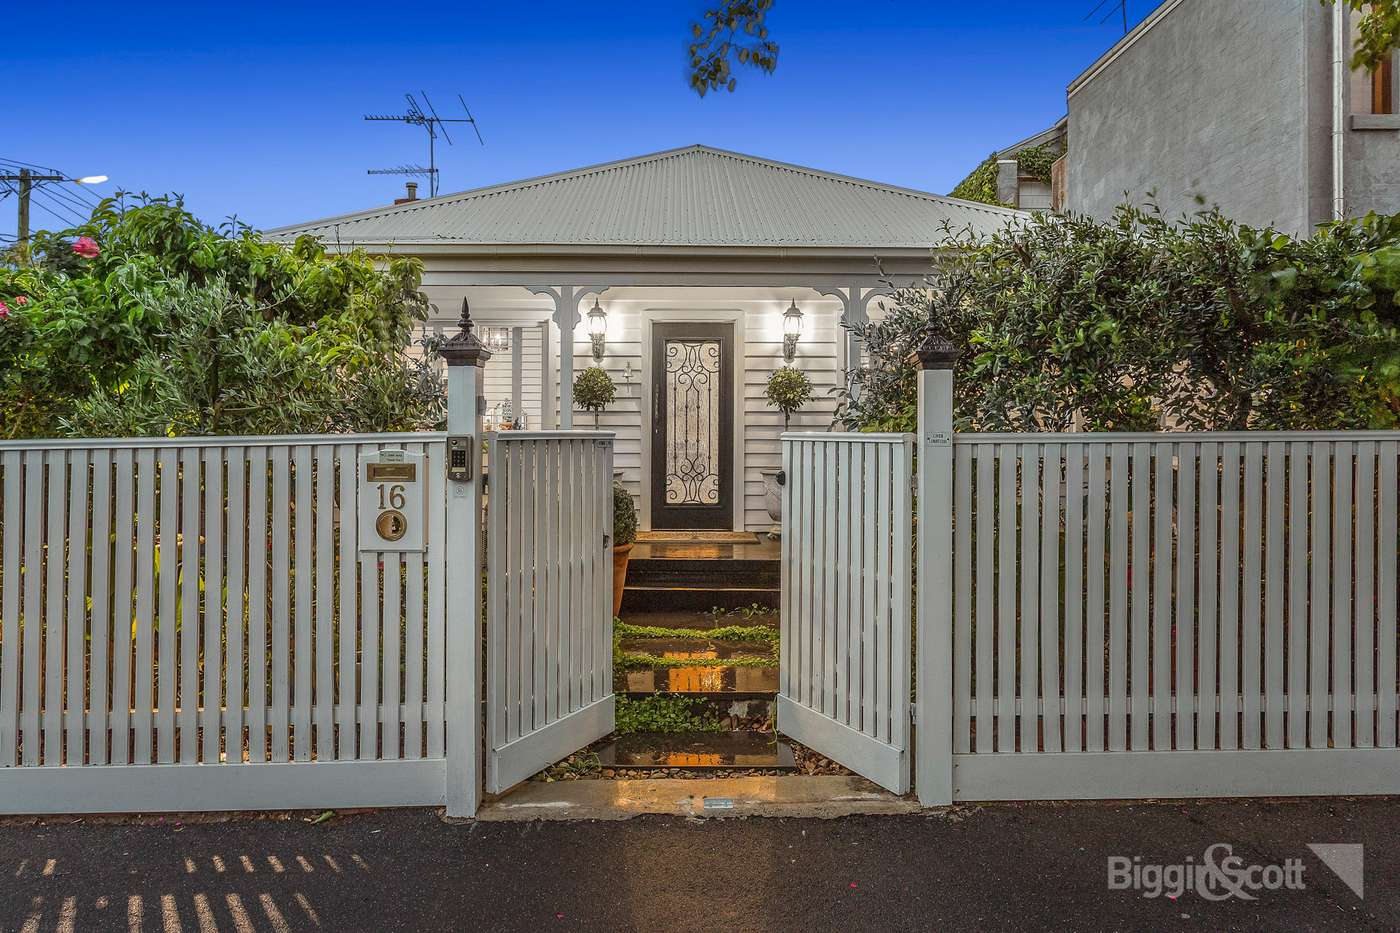 Main view of Homely house listing, 16 Gordon Parade, Yarraville, VIC 3013